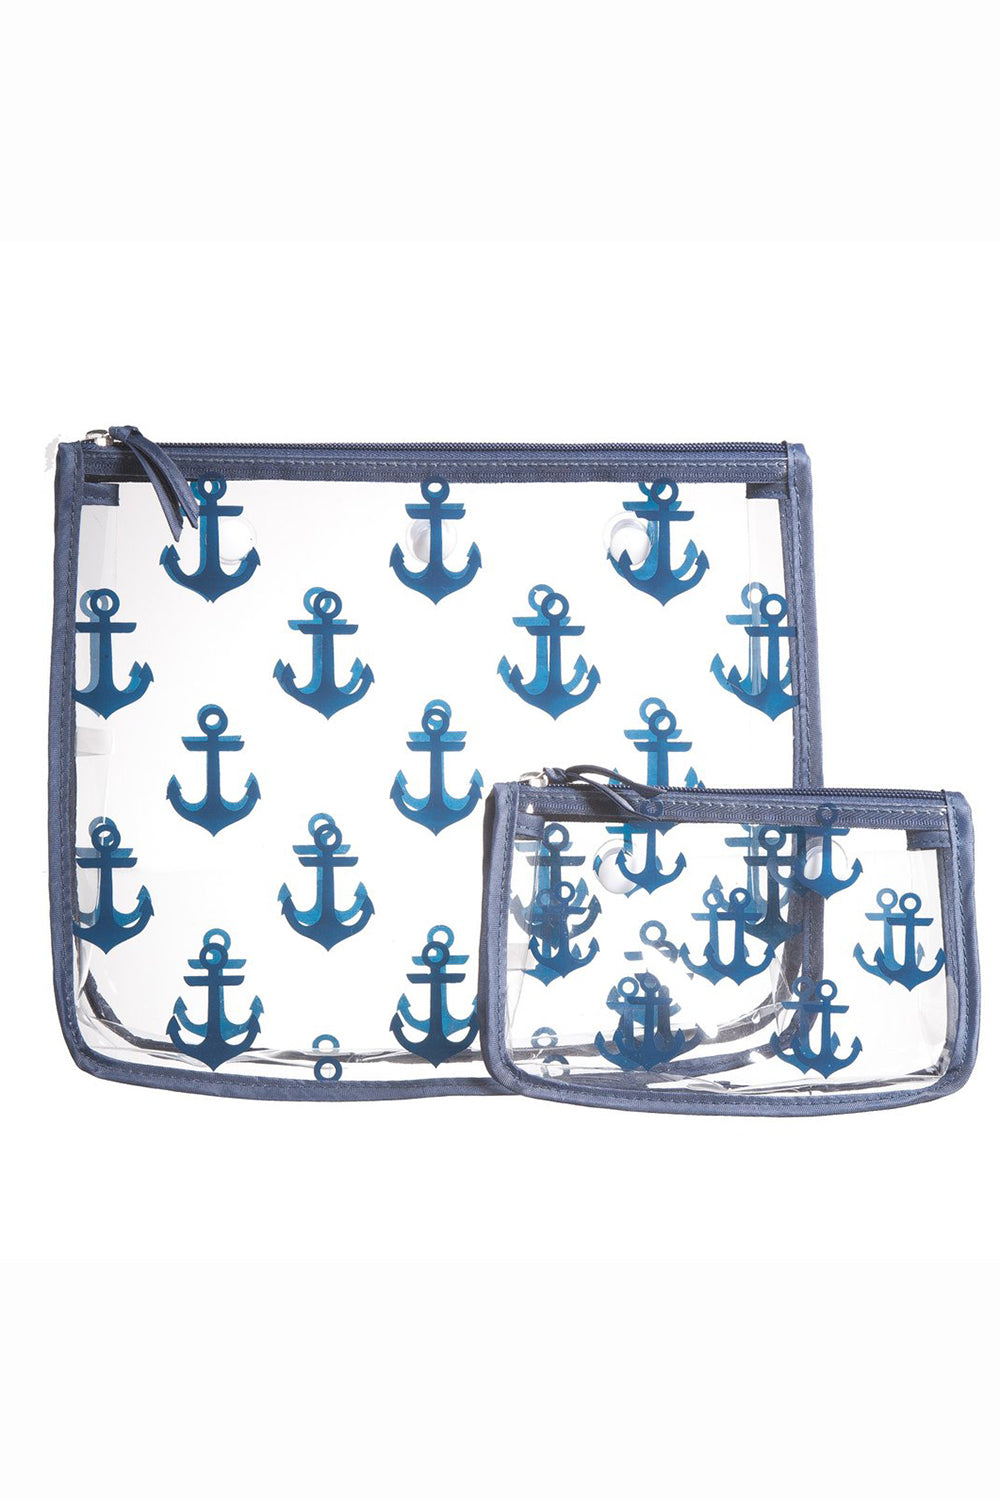 Bogg Bag Insert - Anchor Navy